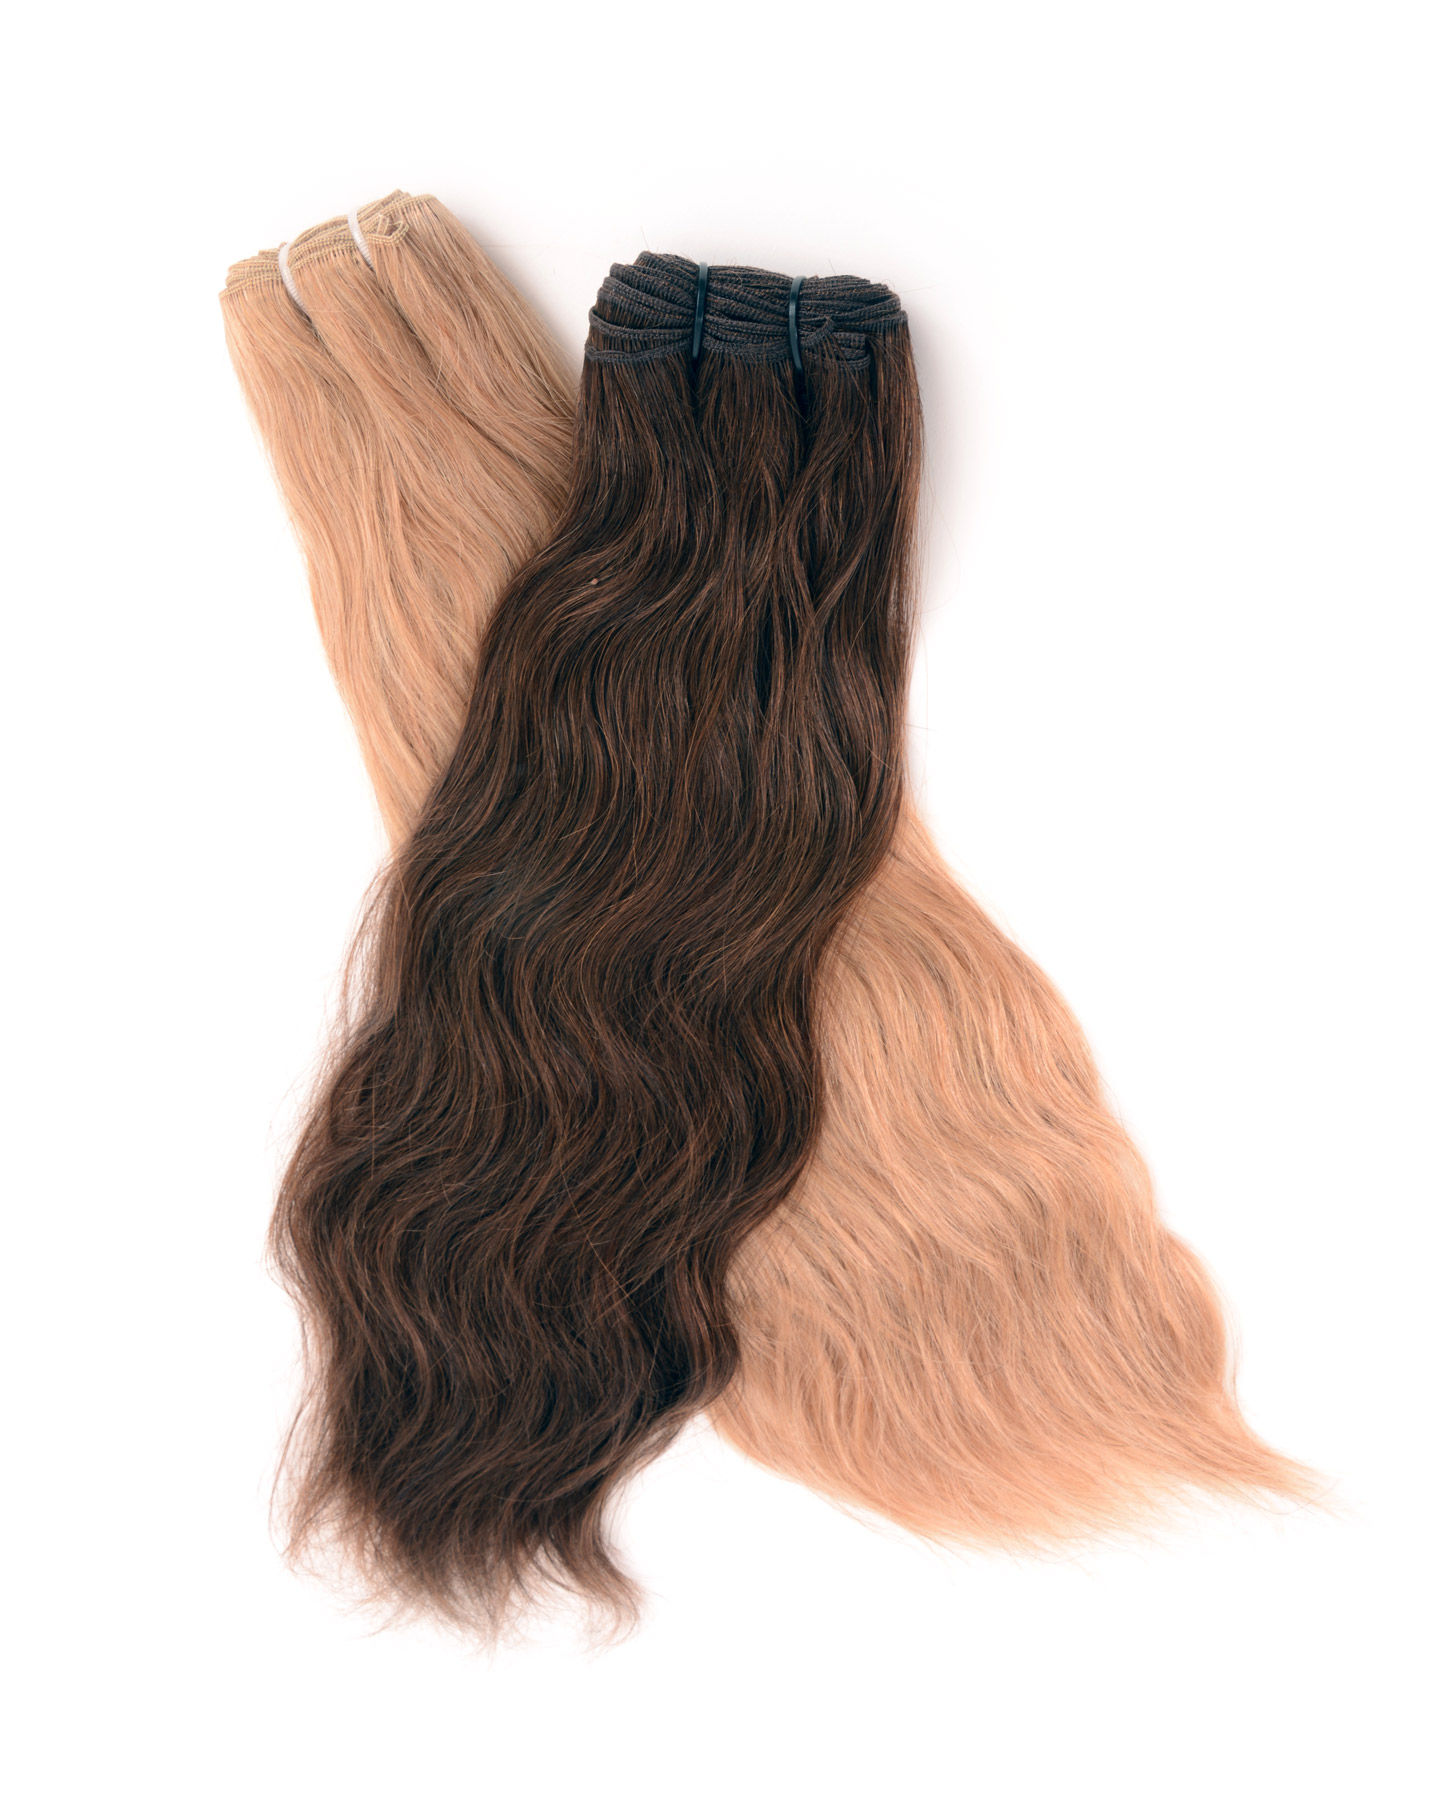 22 inch weft human hair and synthetic 7303dfb0e5